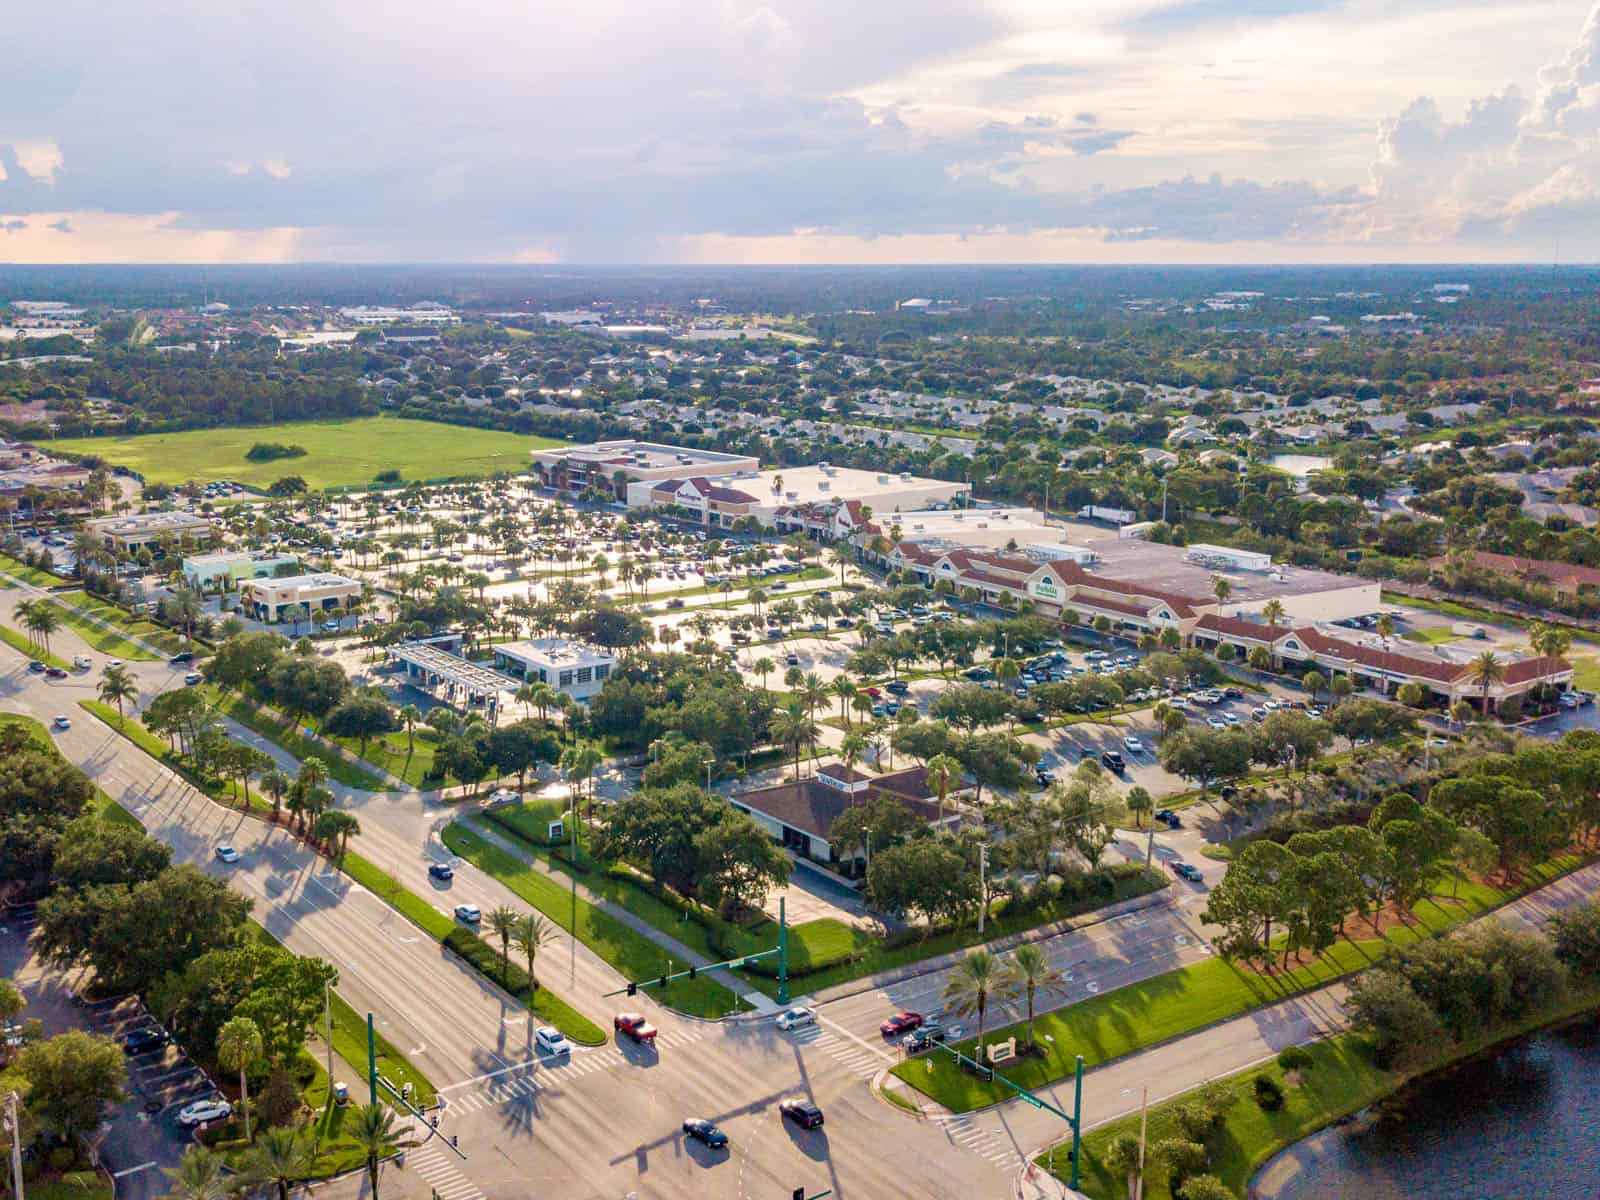 aerial drone photo of shopping center in Florida